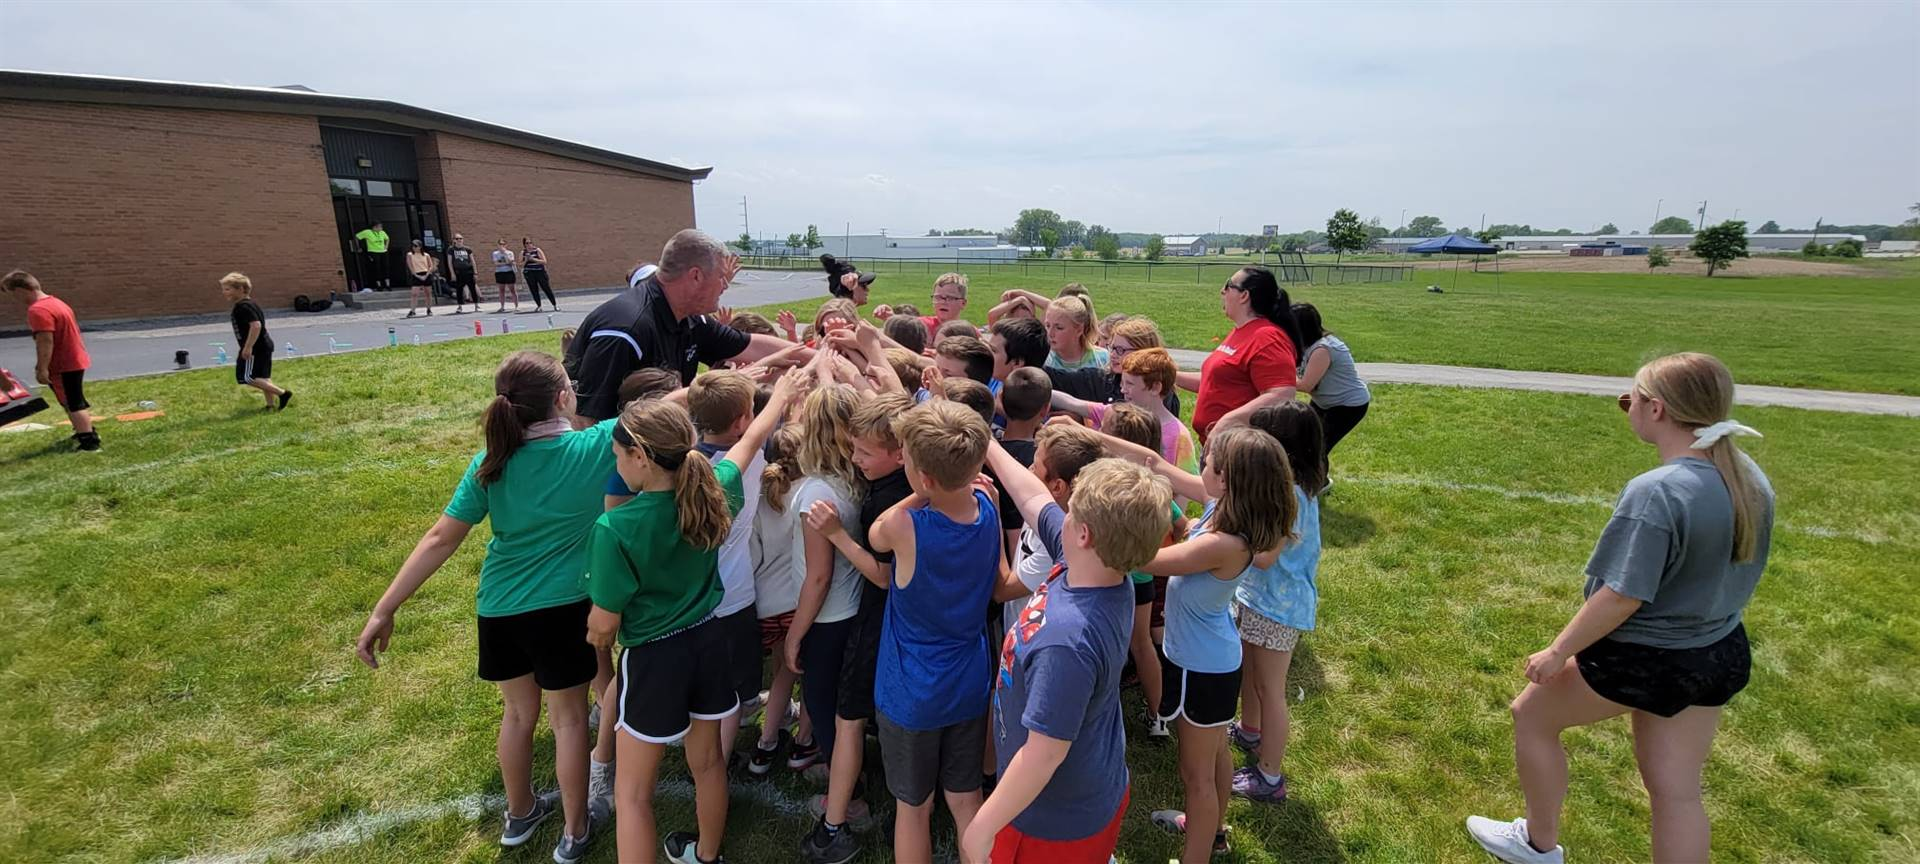 Mr. Ahrens teaching about teamwork and respect during the kickball tournament.